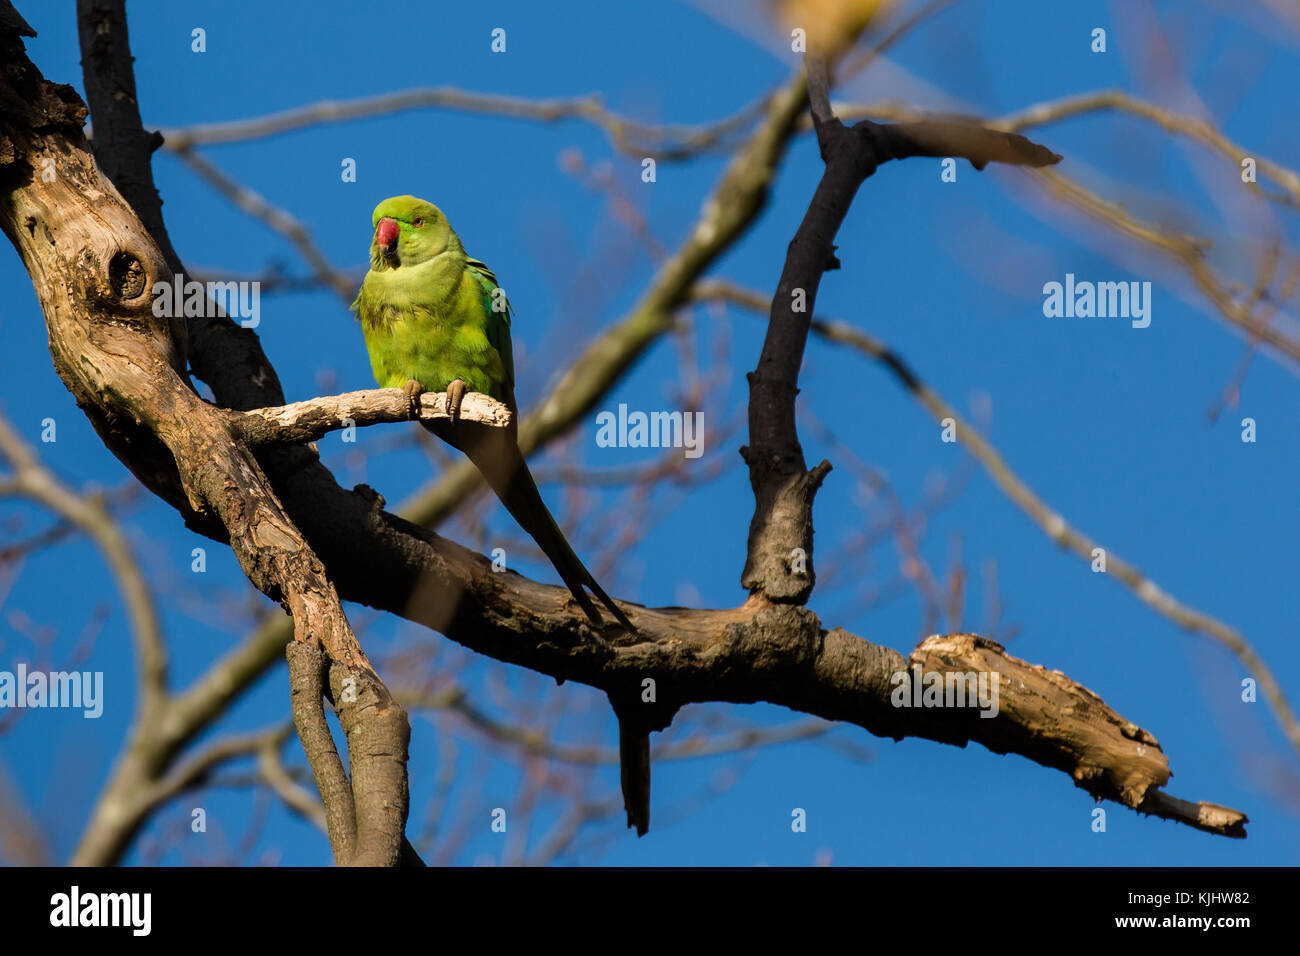 A lone ring necked parakeet resting on a tree branch, Barn Hill, Wembley Park - Stock Image